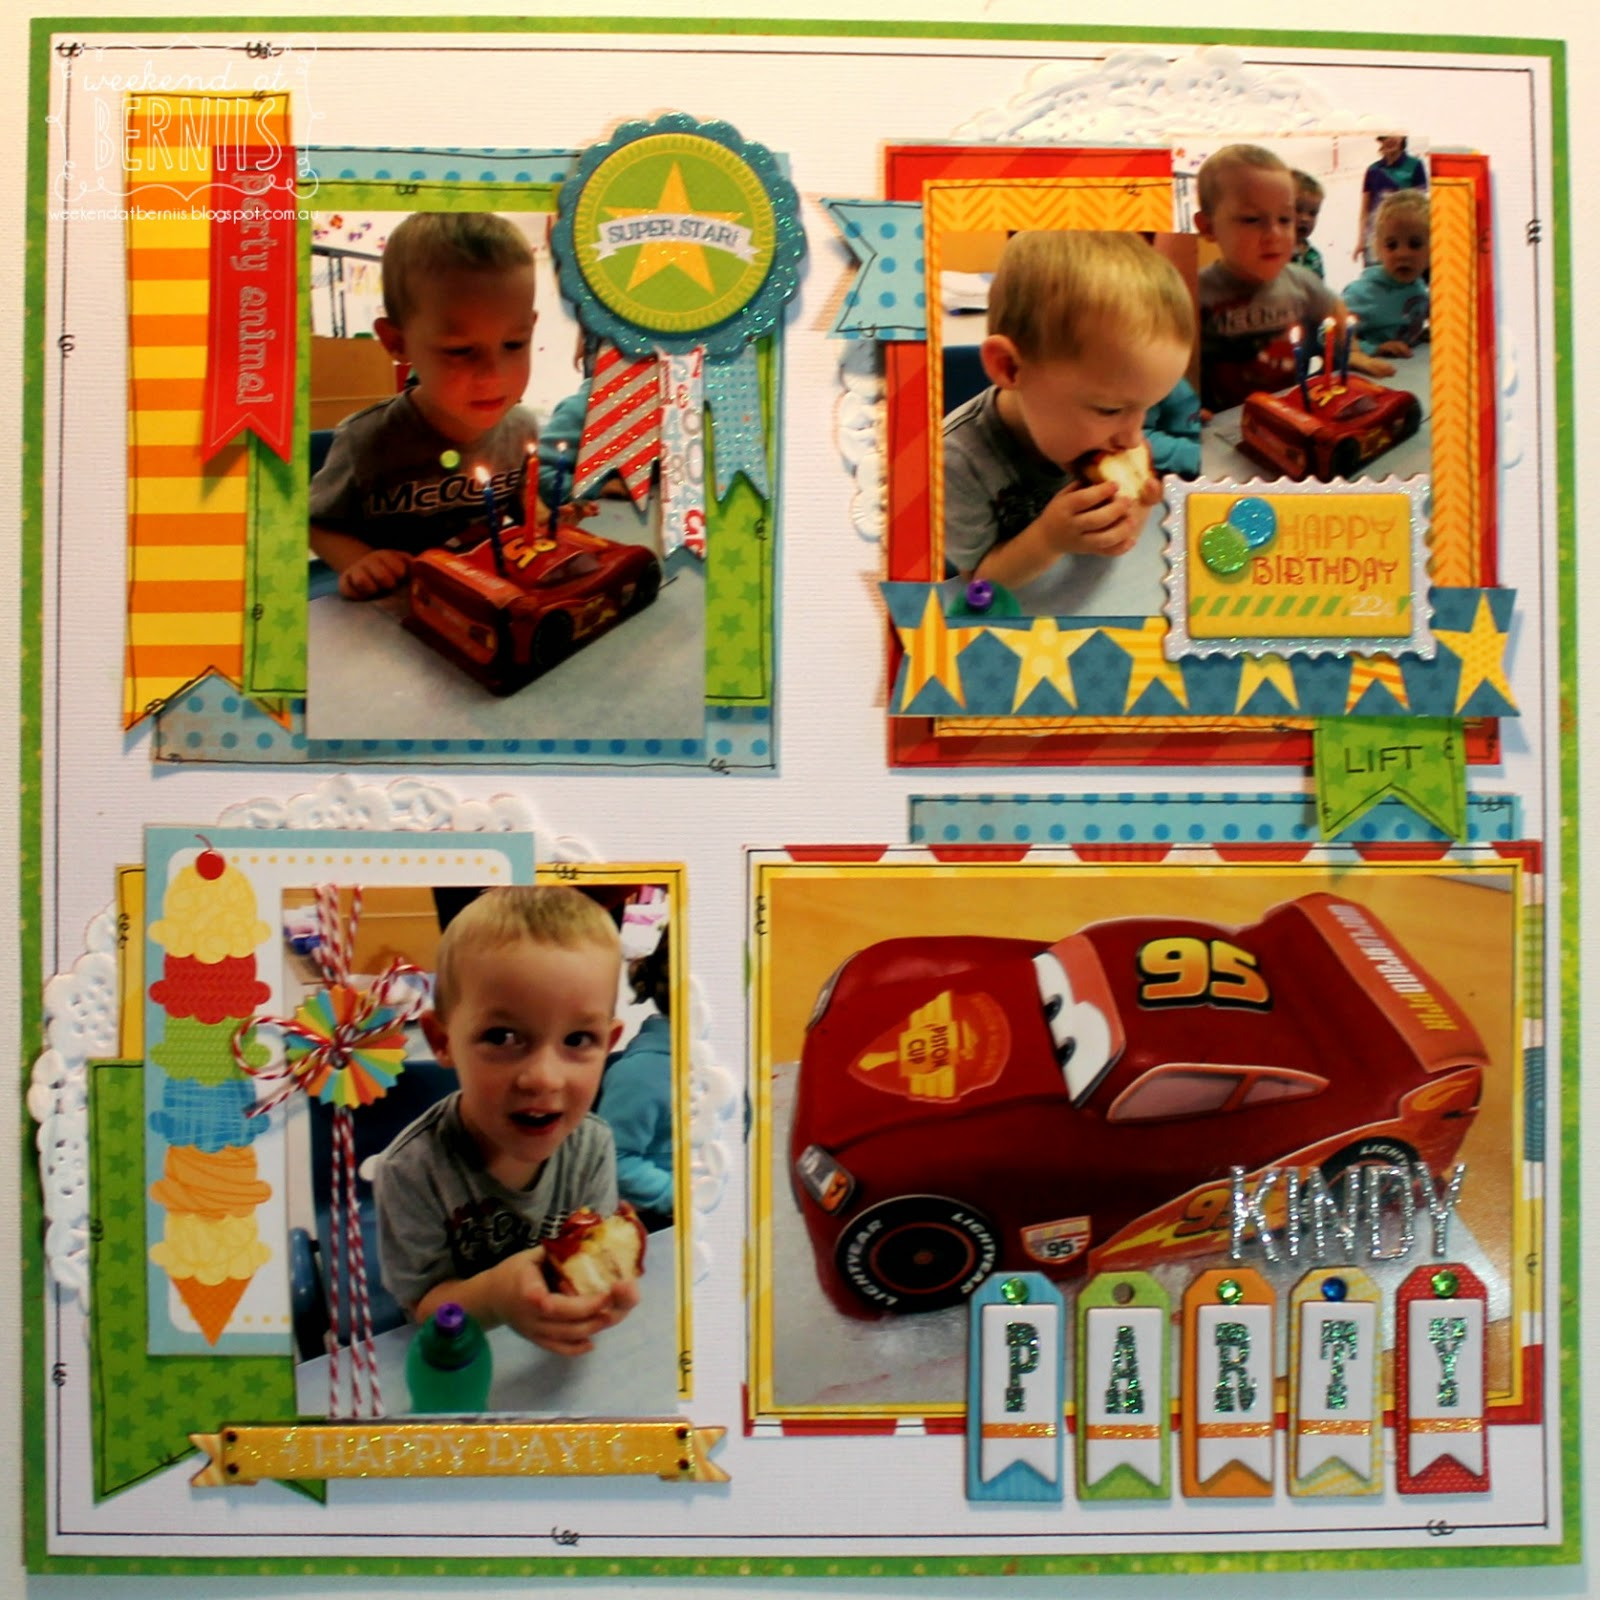 Kindy Party layout by Bernii Miller using the Surprise collection by BoBunny